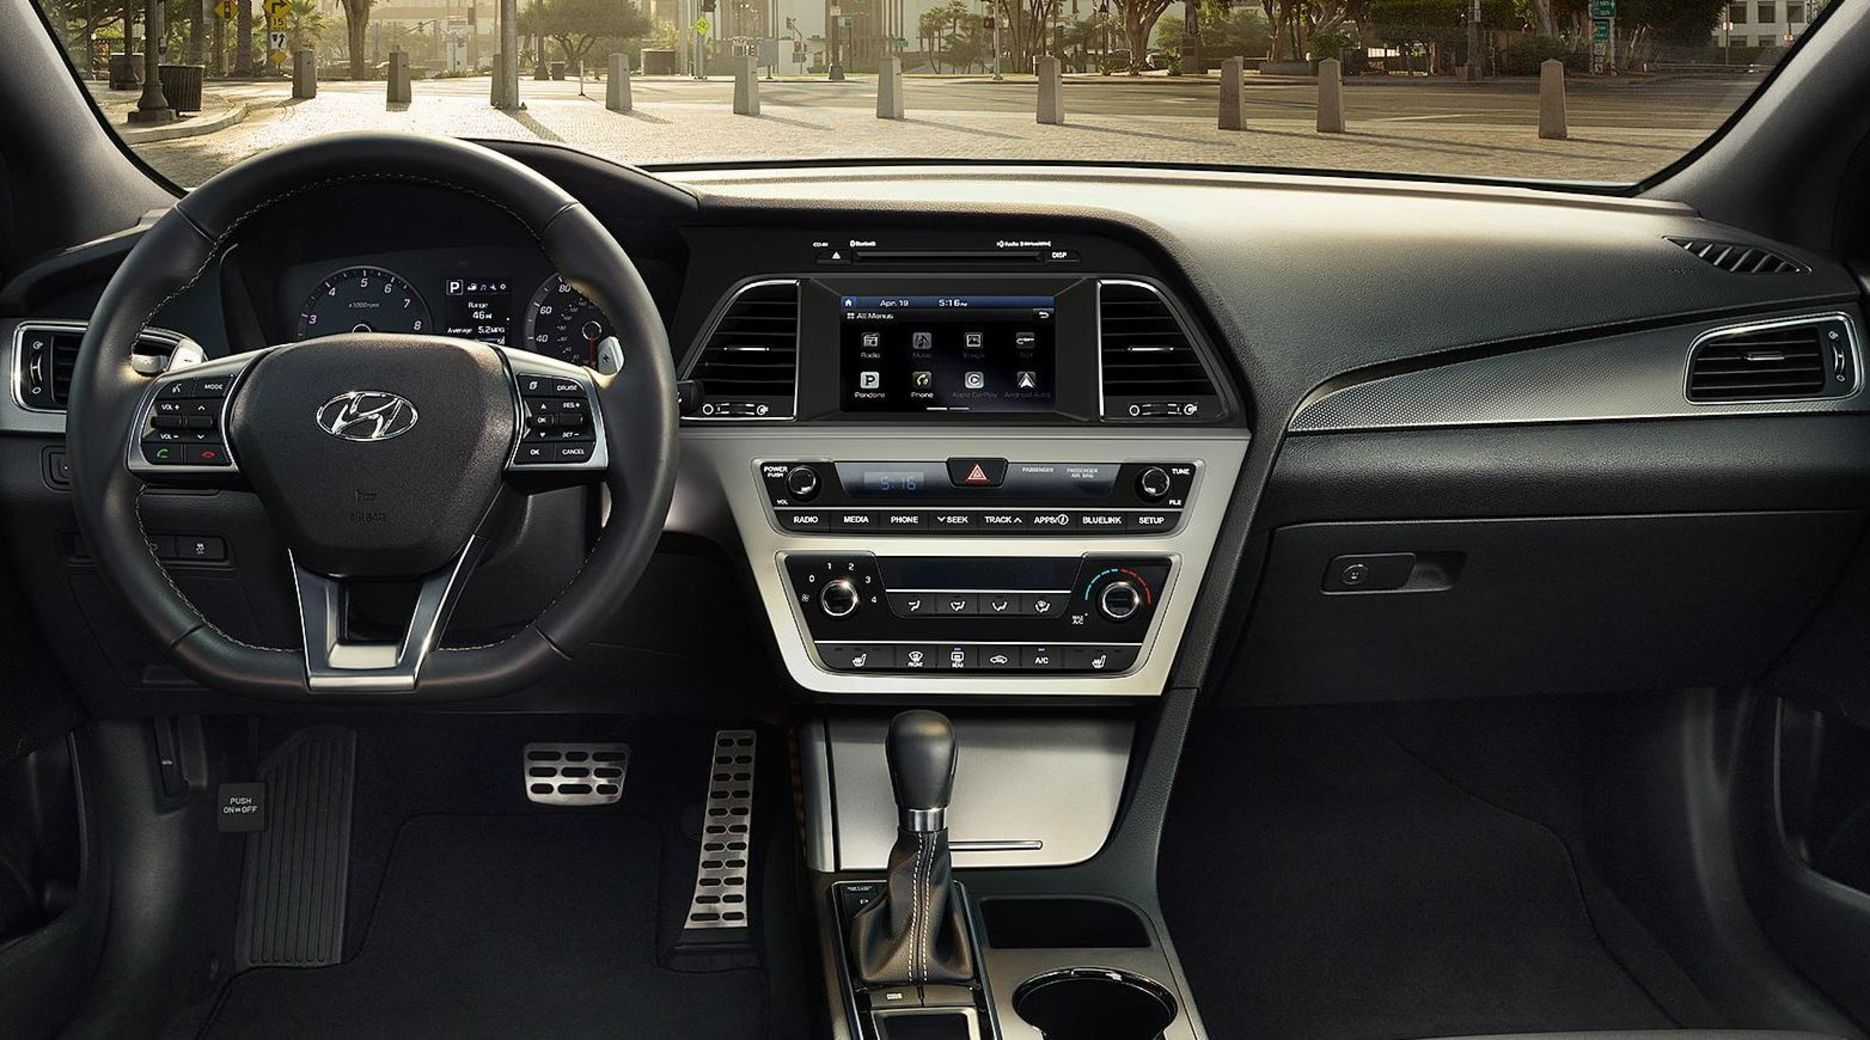 Cabin of the Hyundai Sonata